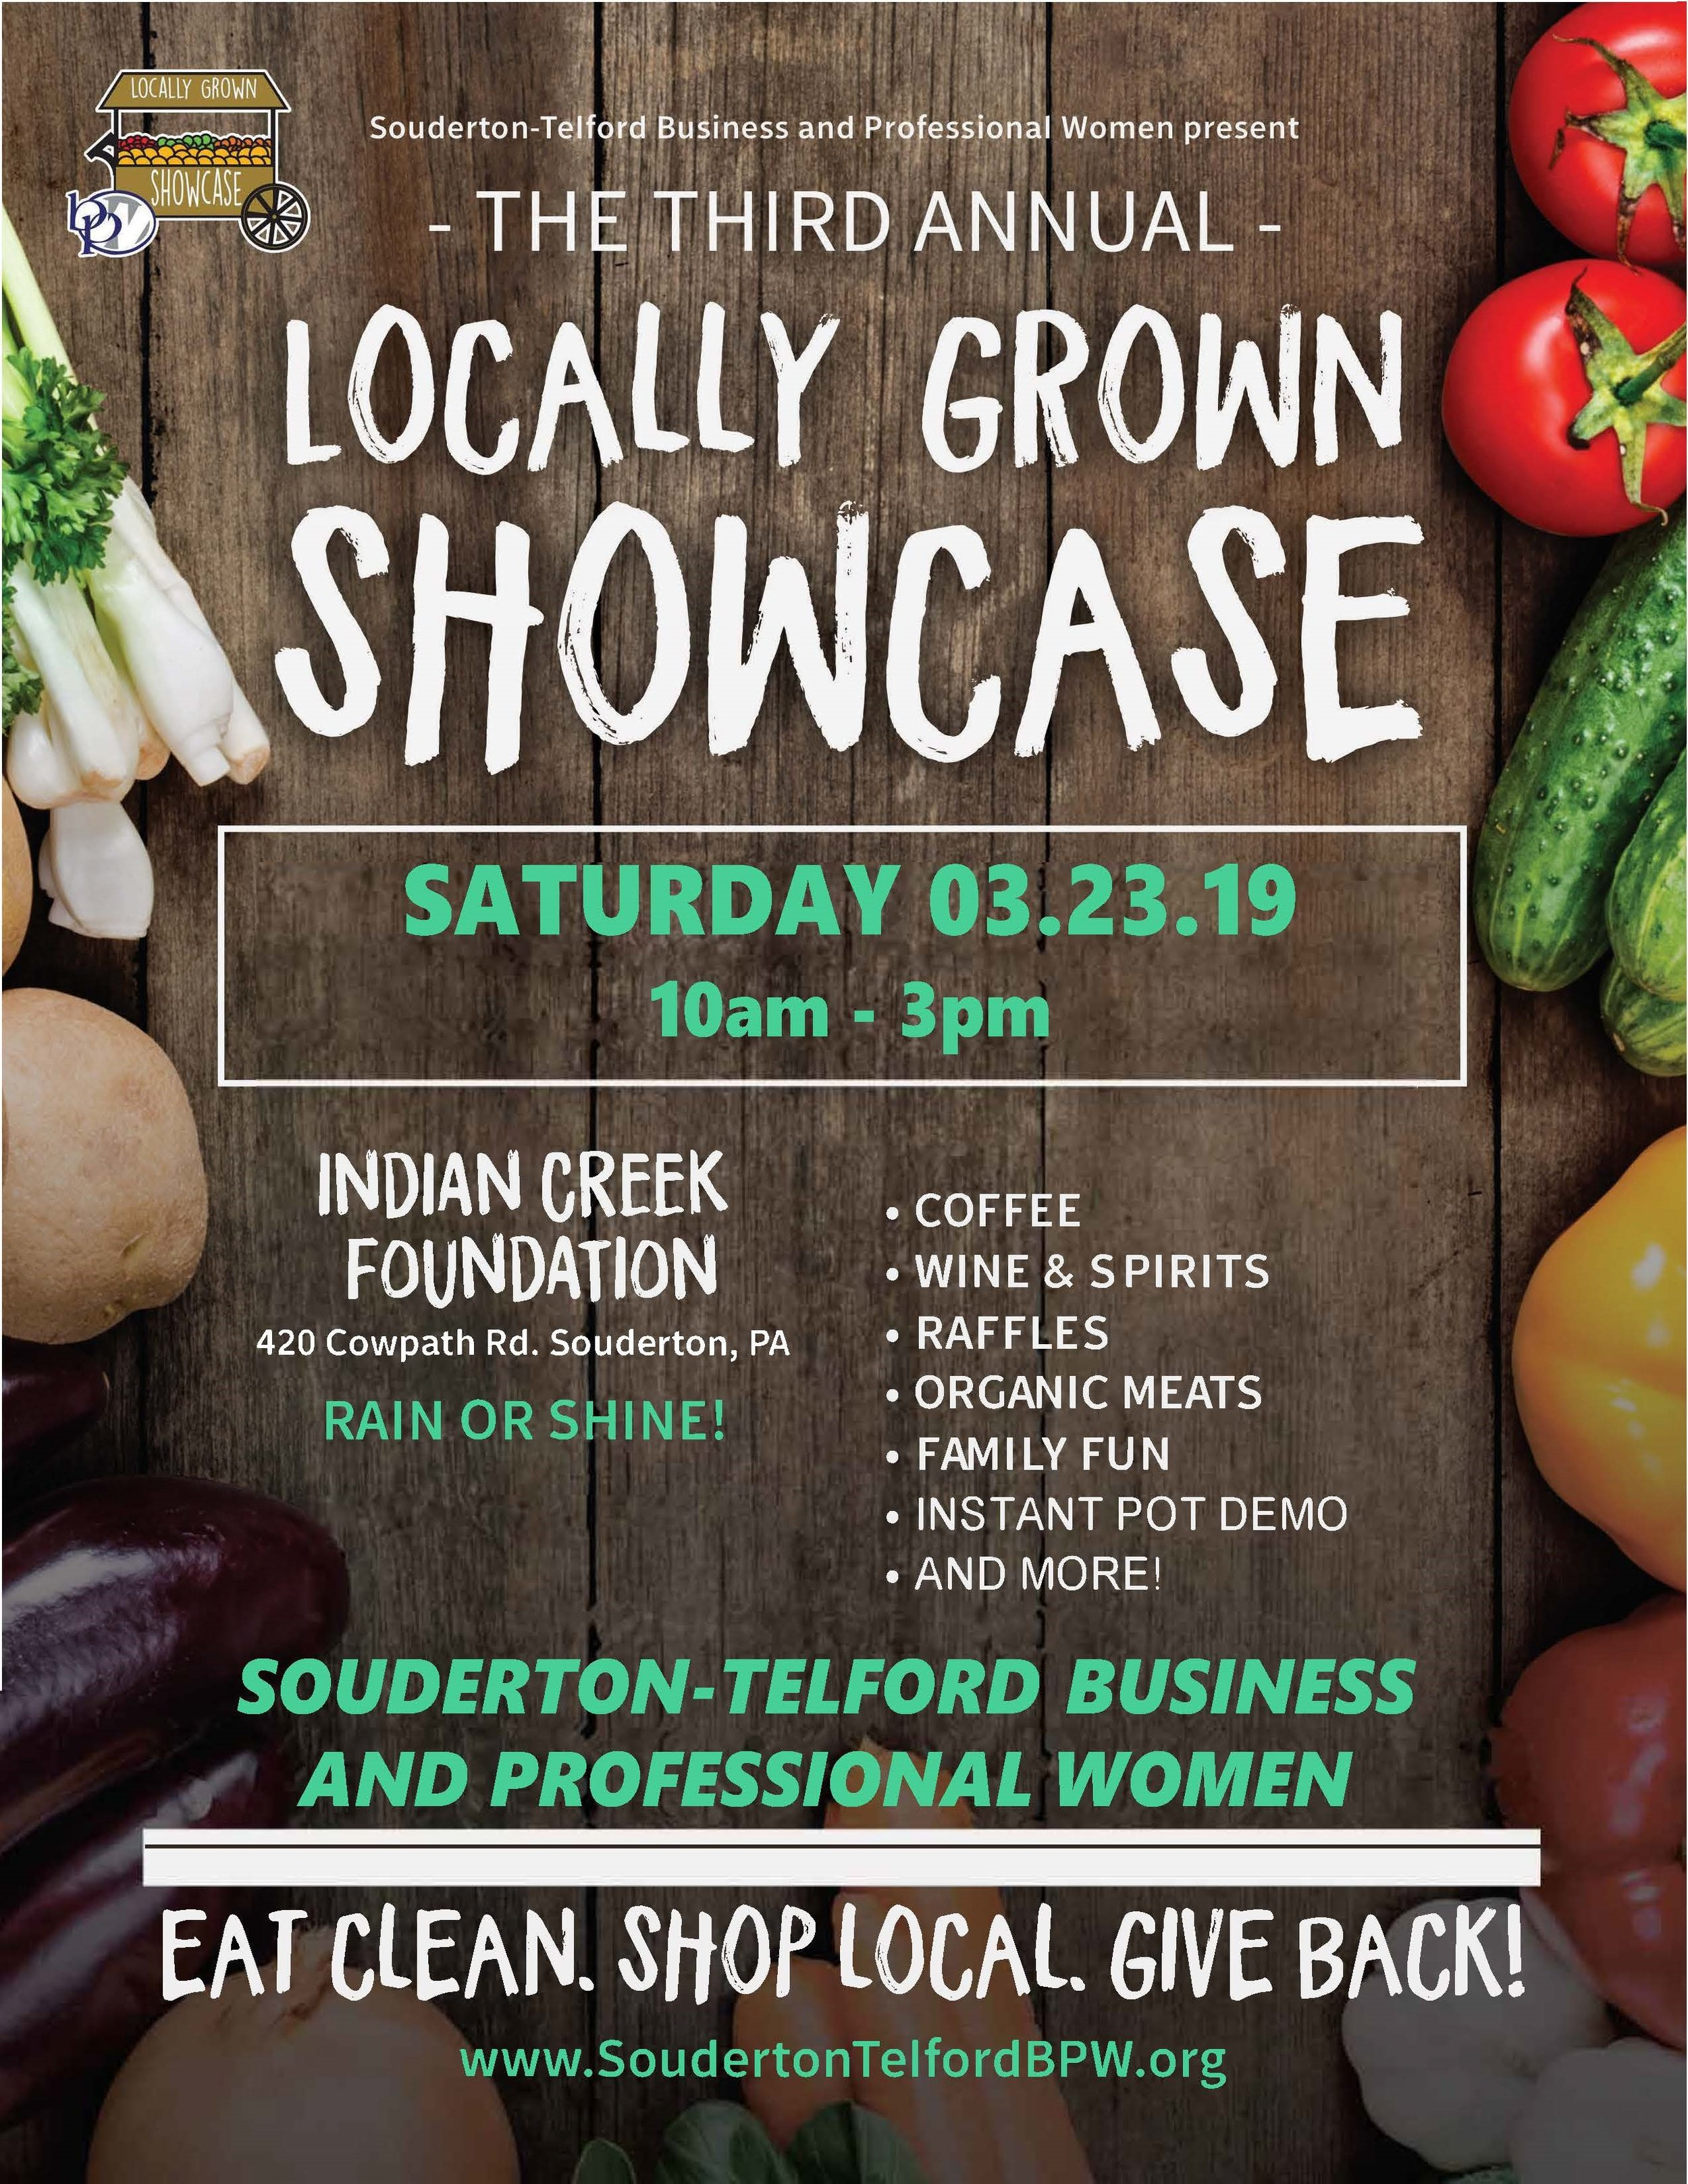 locall grown showcase flyer 2019.jpg